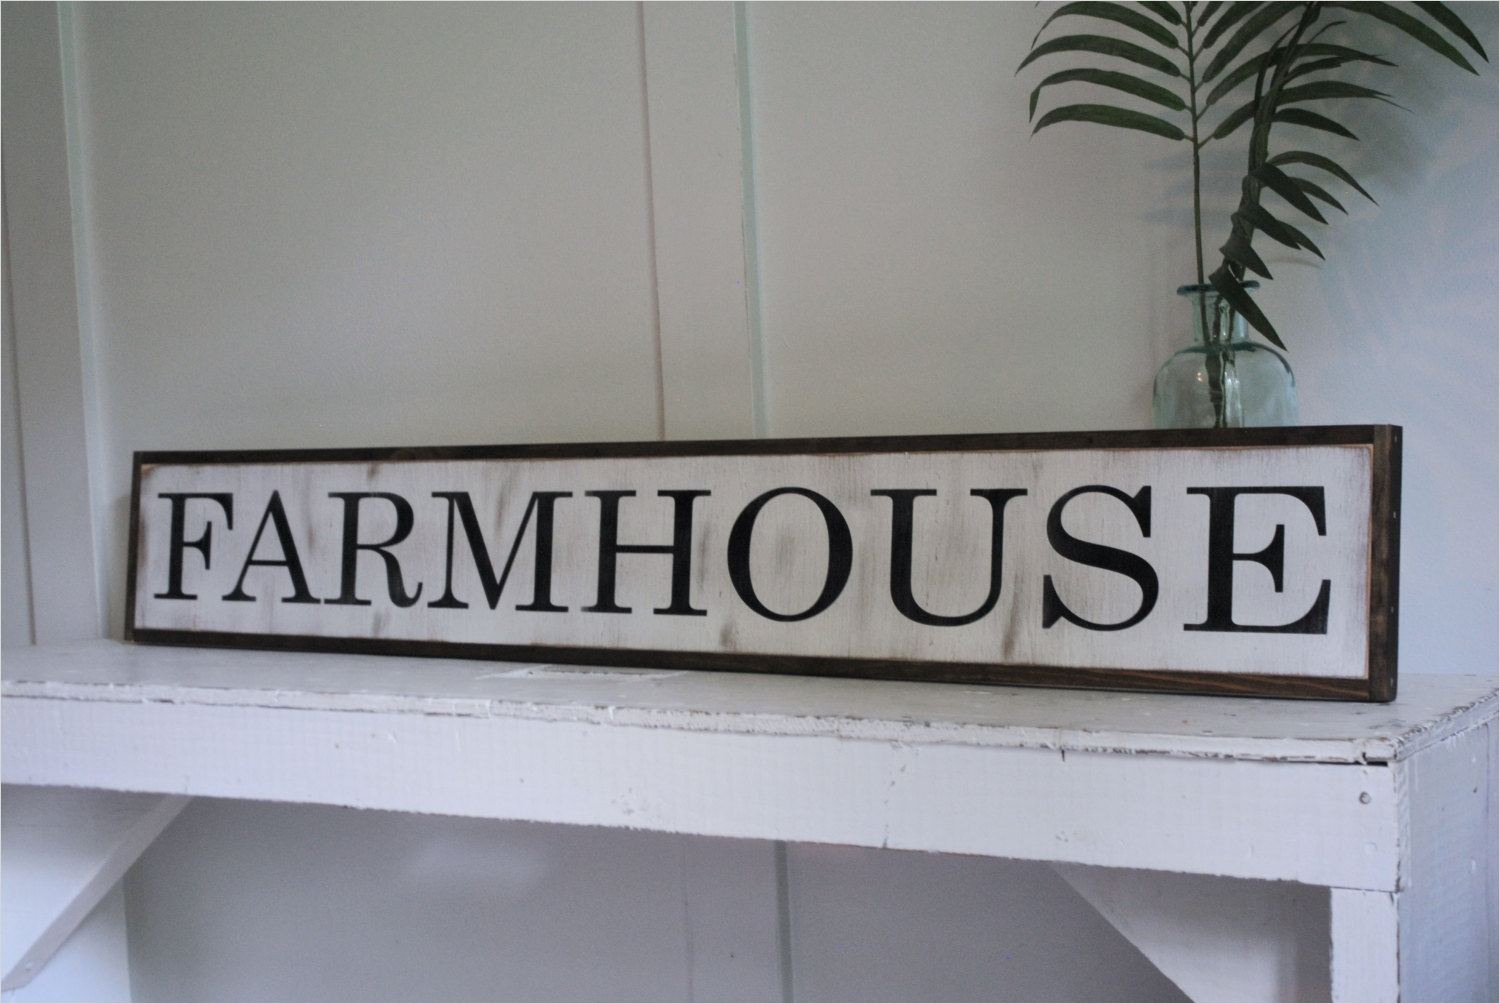 44 Gorgeous Farmhouse Wall Decor 79 Farmhouse 7x48 Sign Distressed Shabby Chic Wooden Sign Painted Wall Art 2